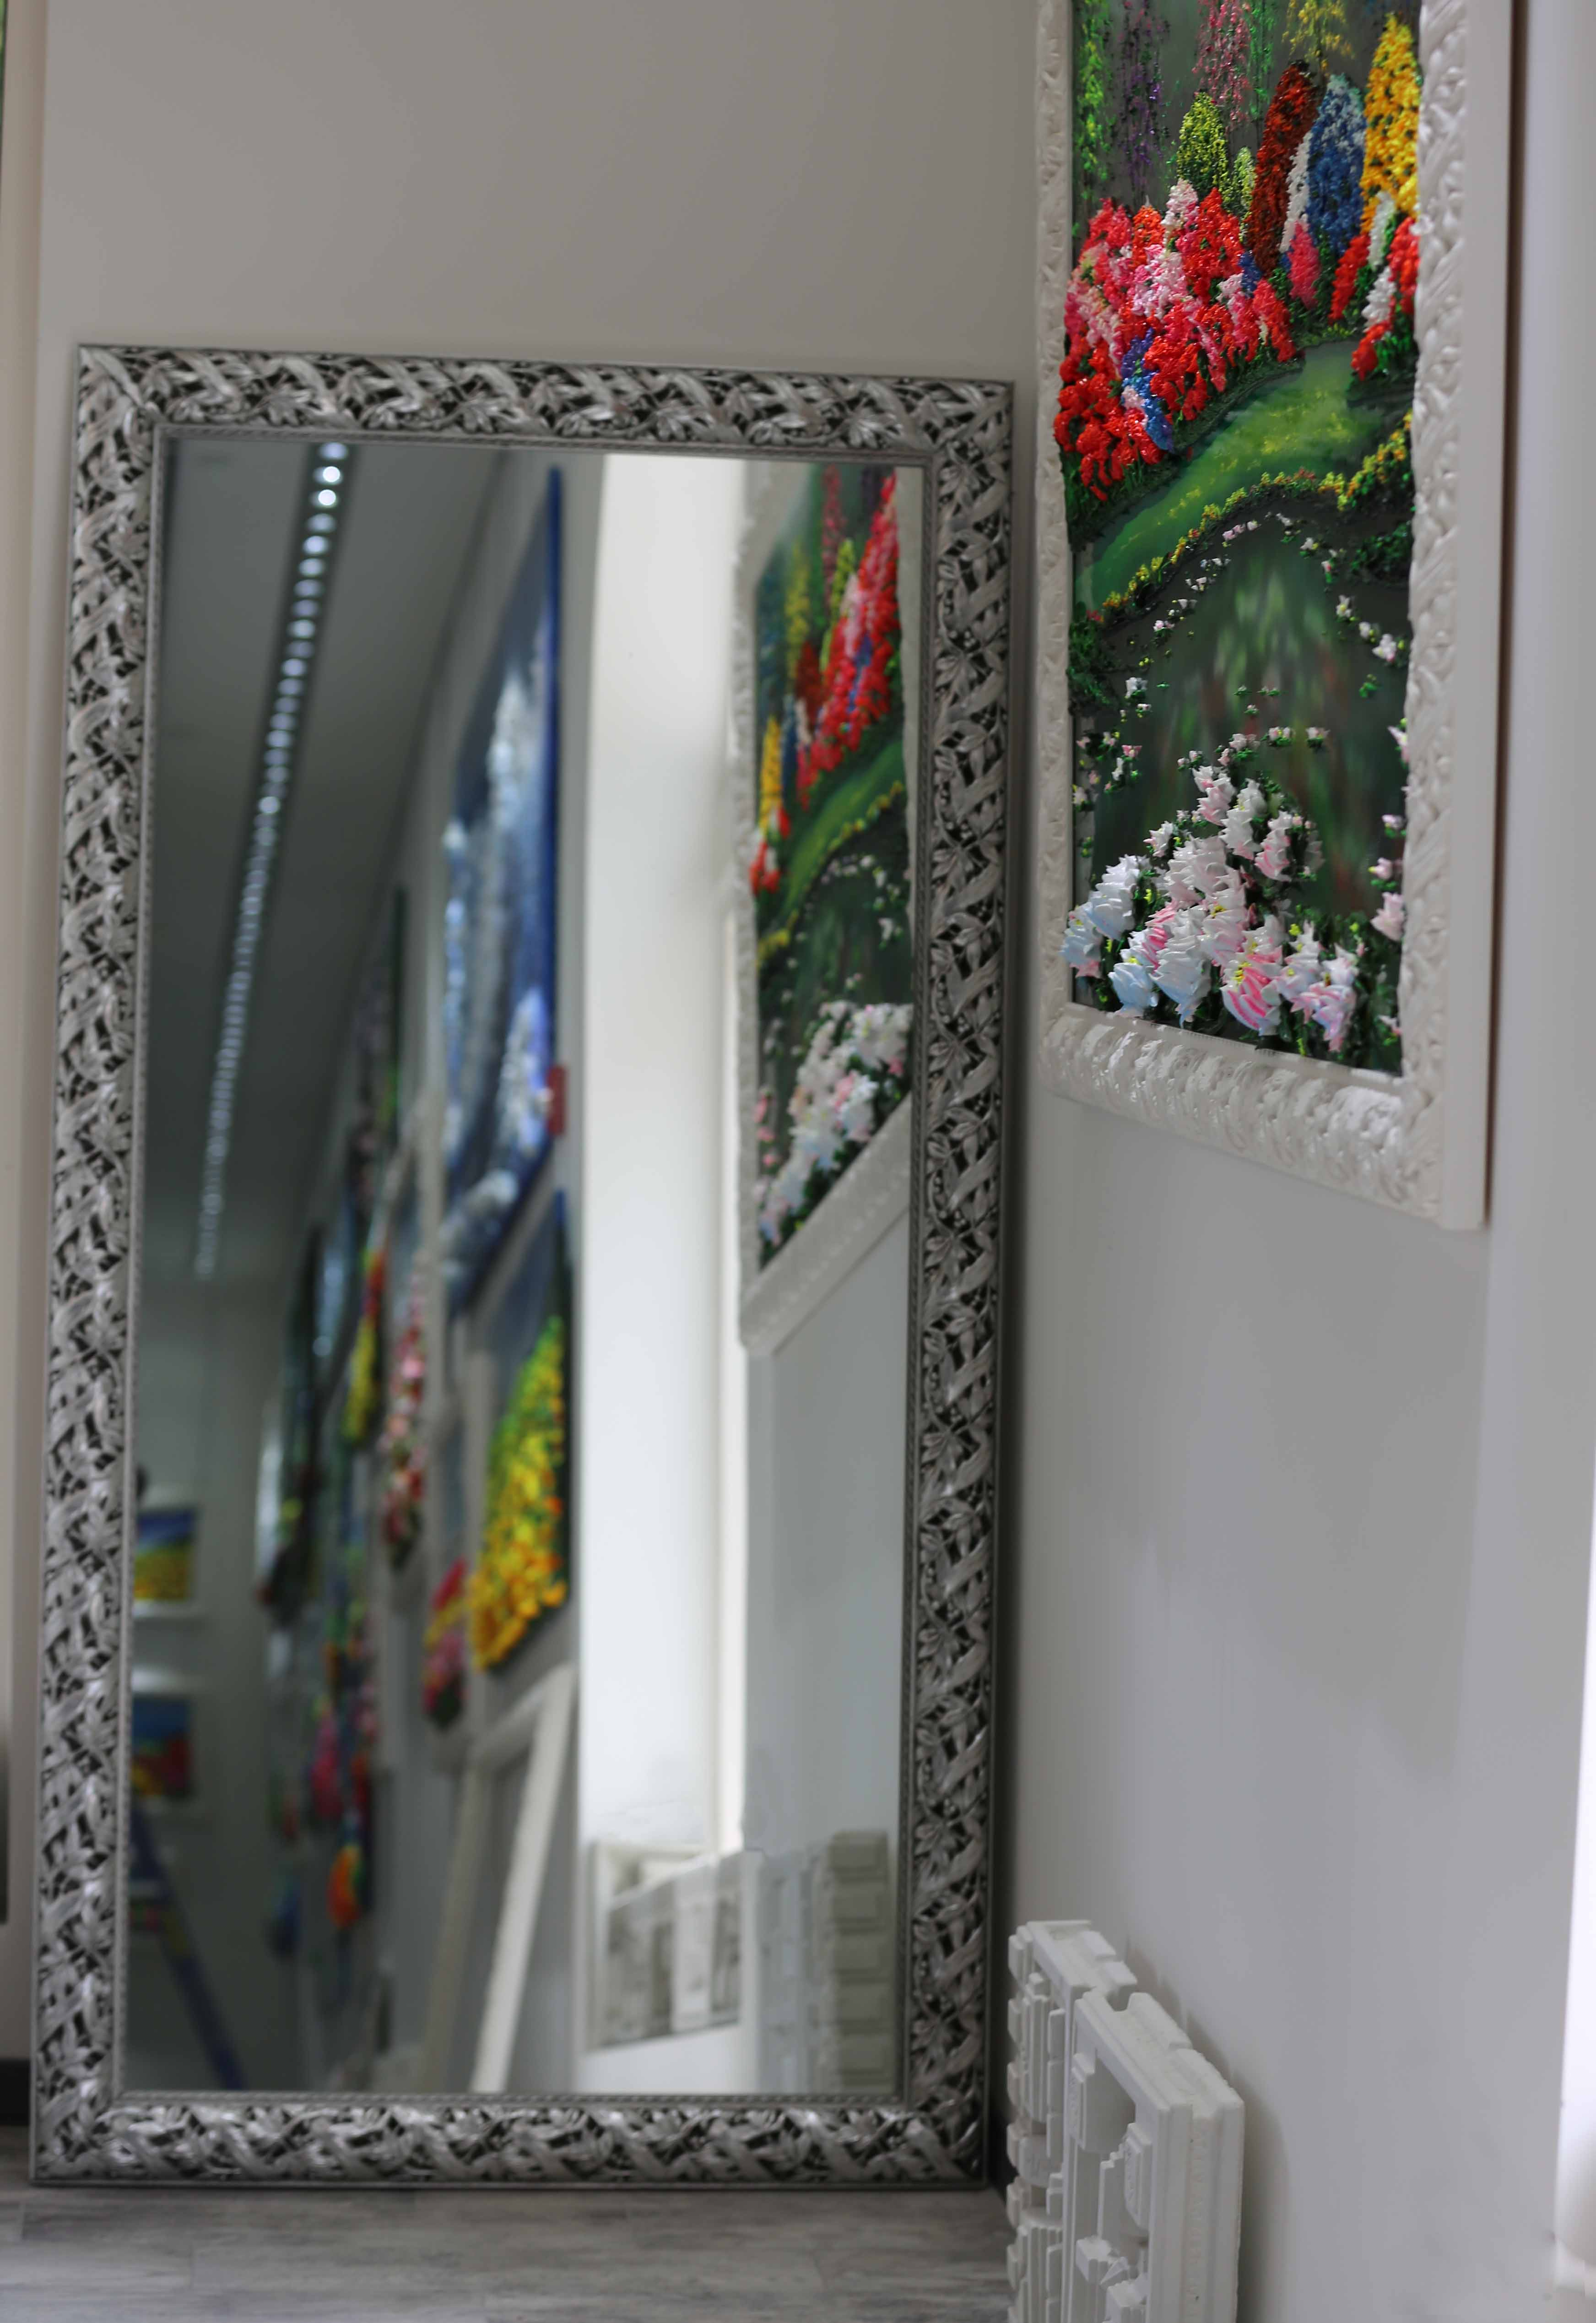 Mirror 39x73 Silver Frame (plaster on wood)